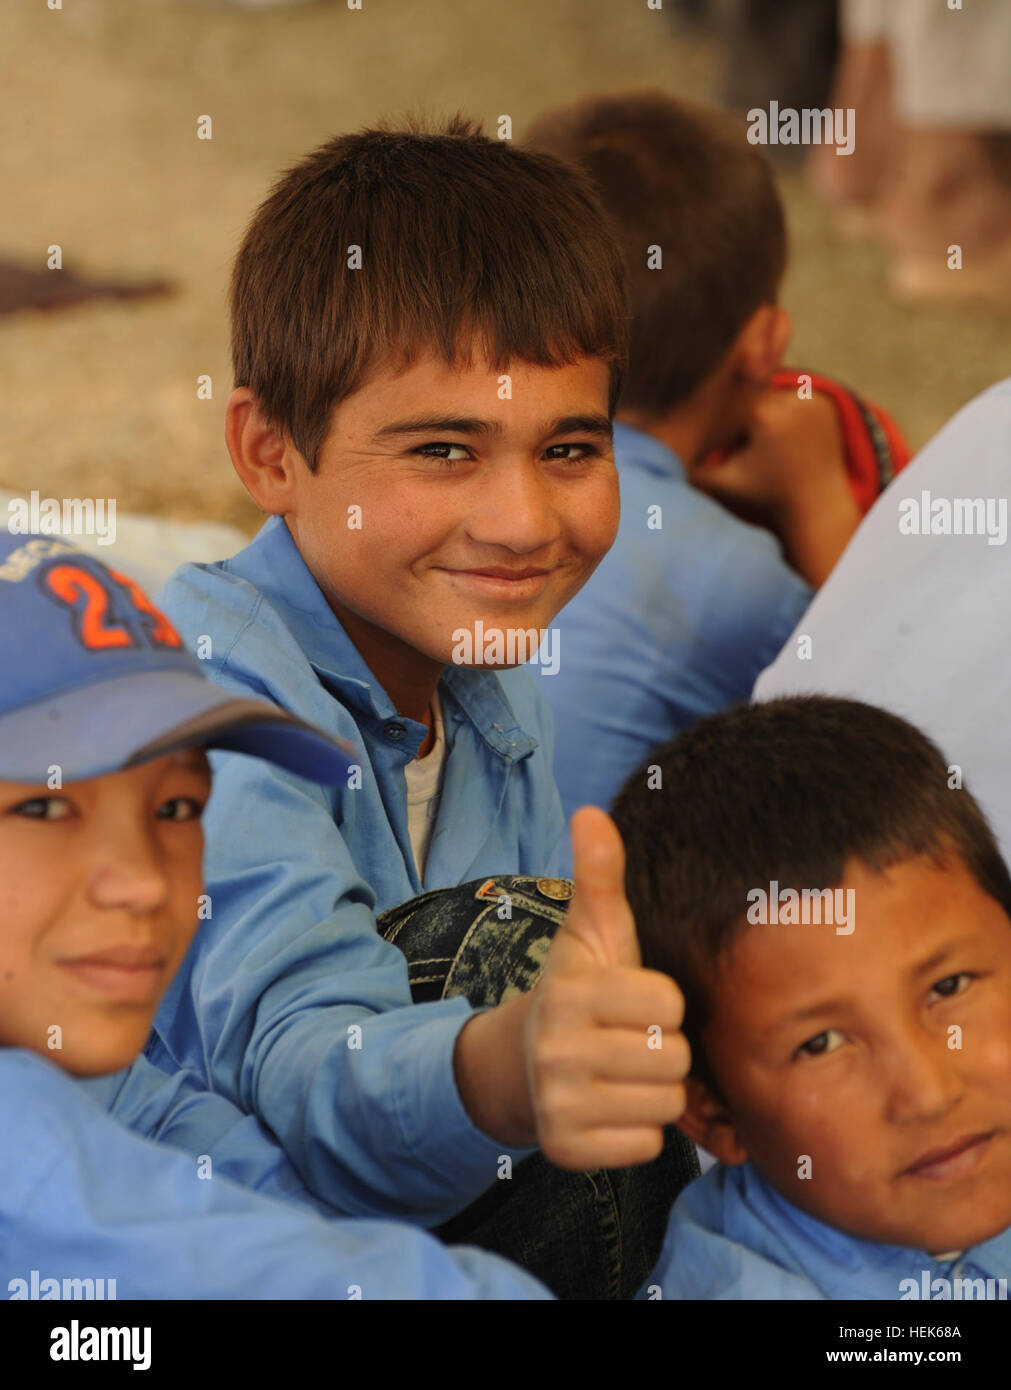 A young Afghan boy shows his approval with a 'thumbs-up' during a ground breaking ceremony at the Aliabad - Stock Image